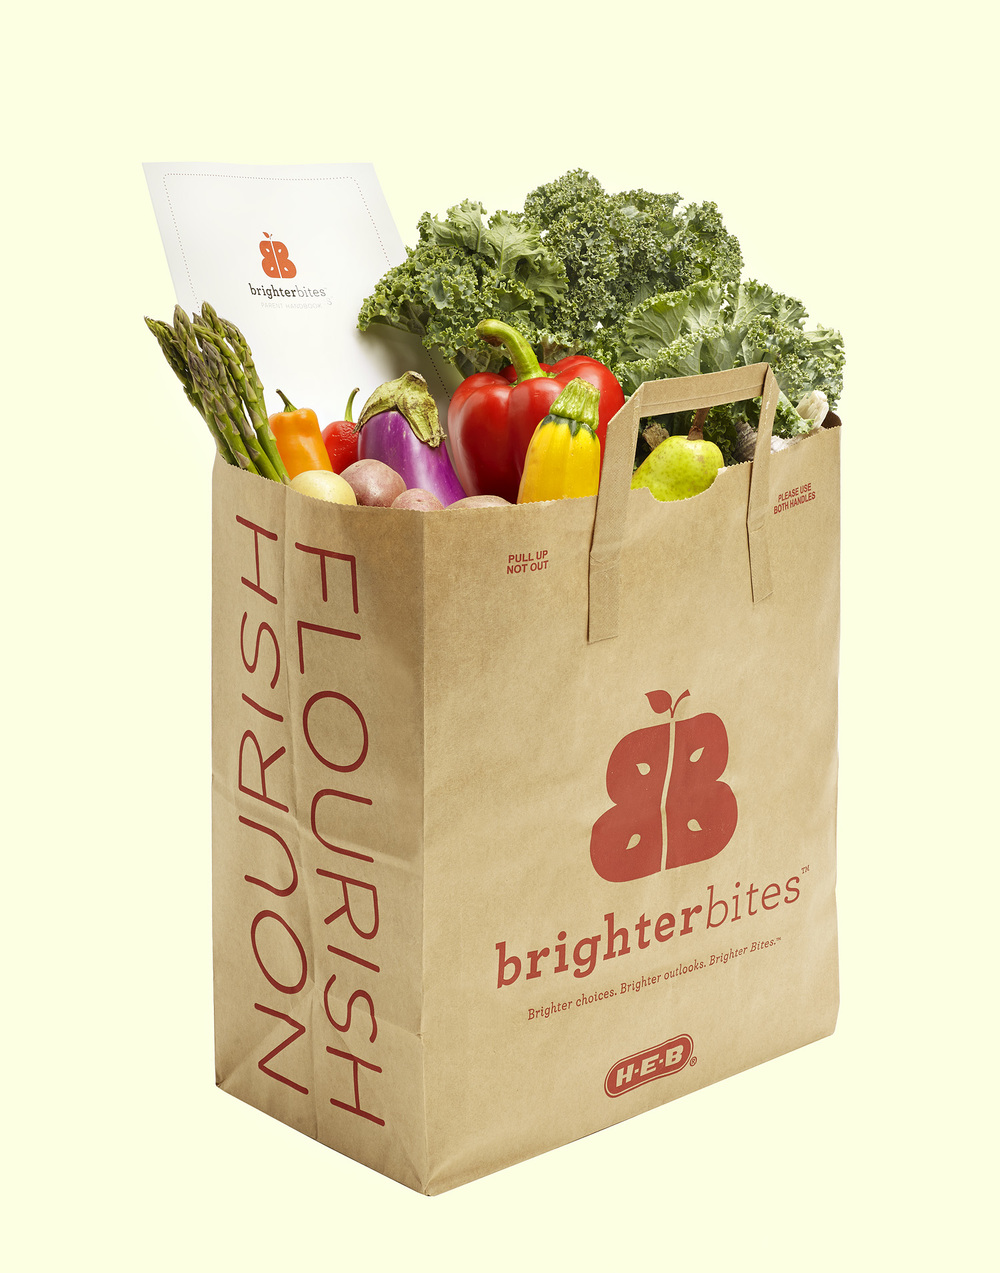 Brighter Bites Bag of Groceries